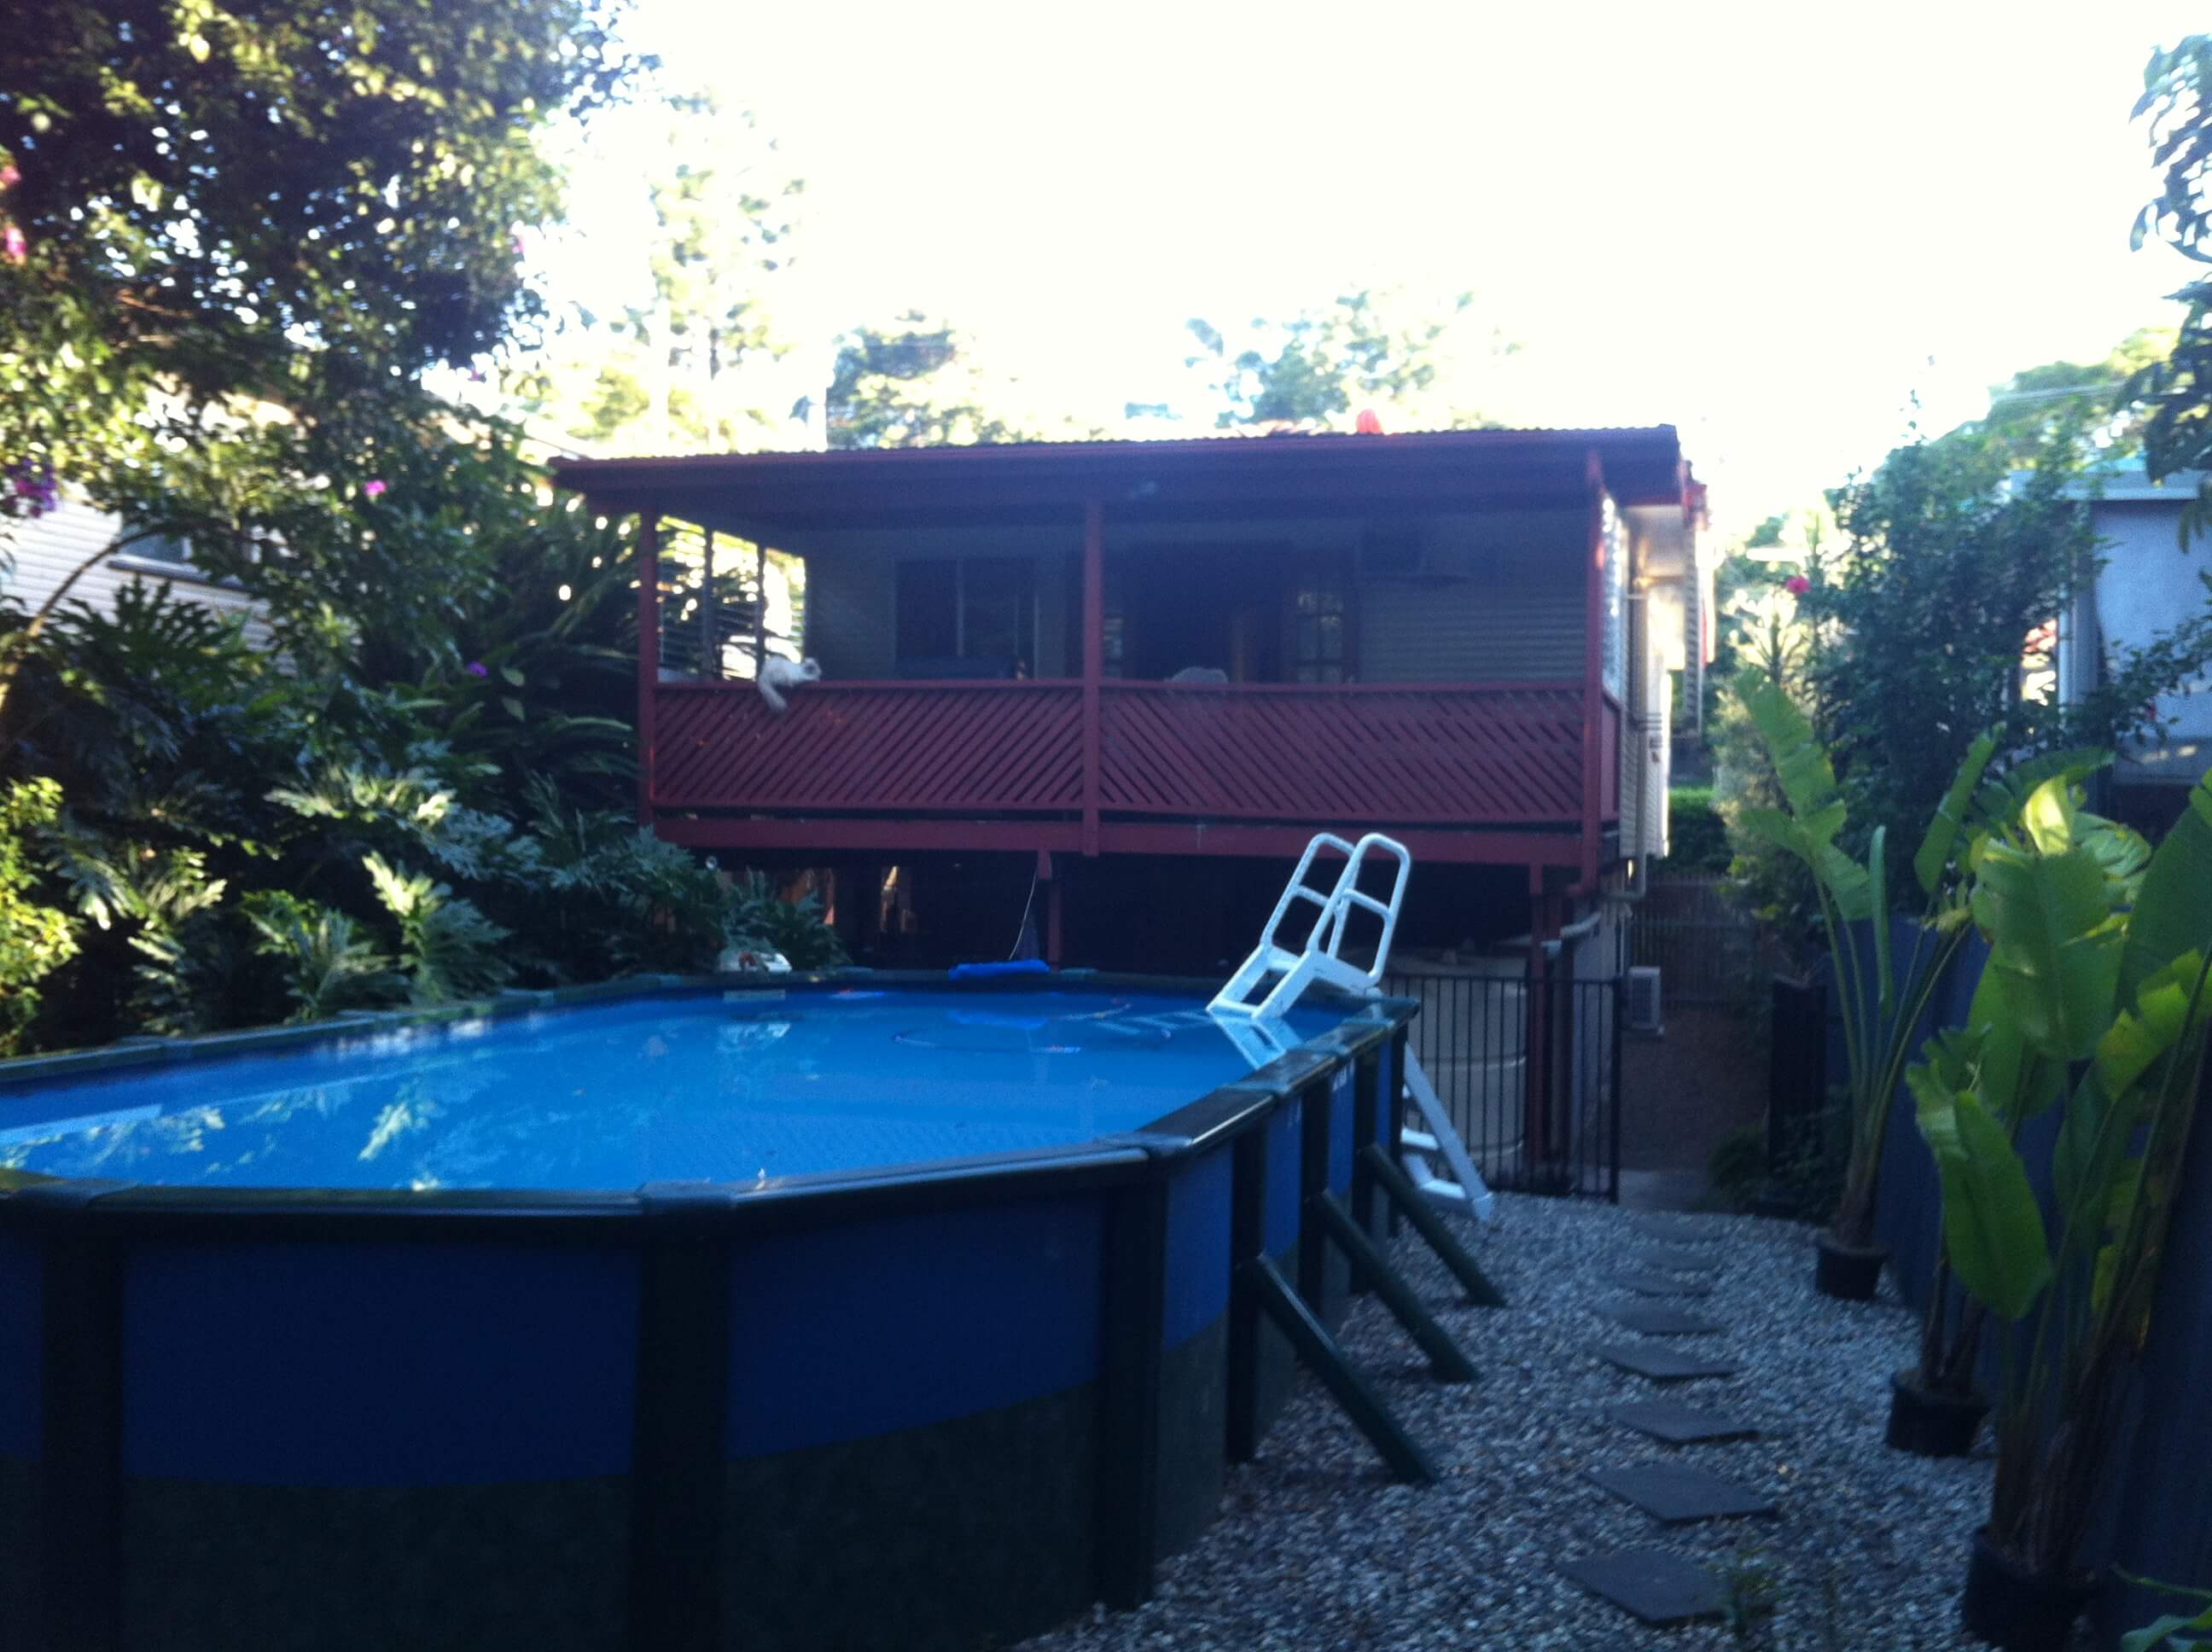 Above Ground Pool gets a Facelift. Amazing Modwood Deck by Adaptit! Pre Build 20